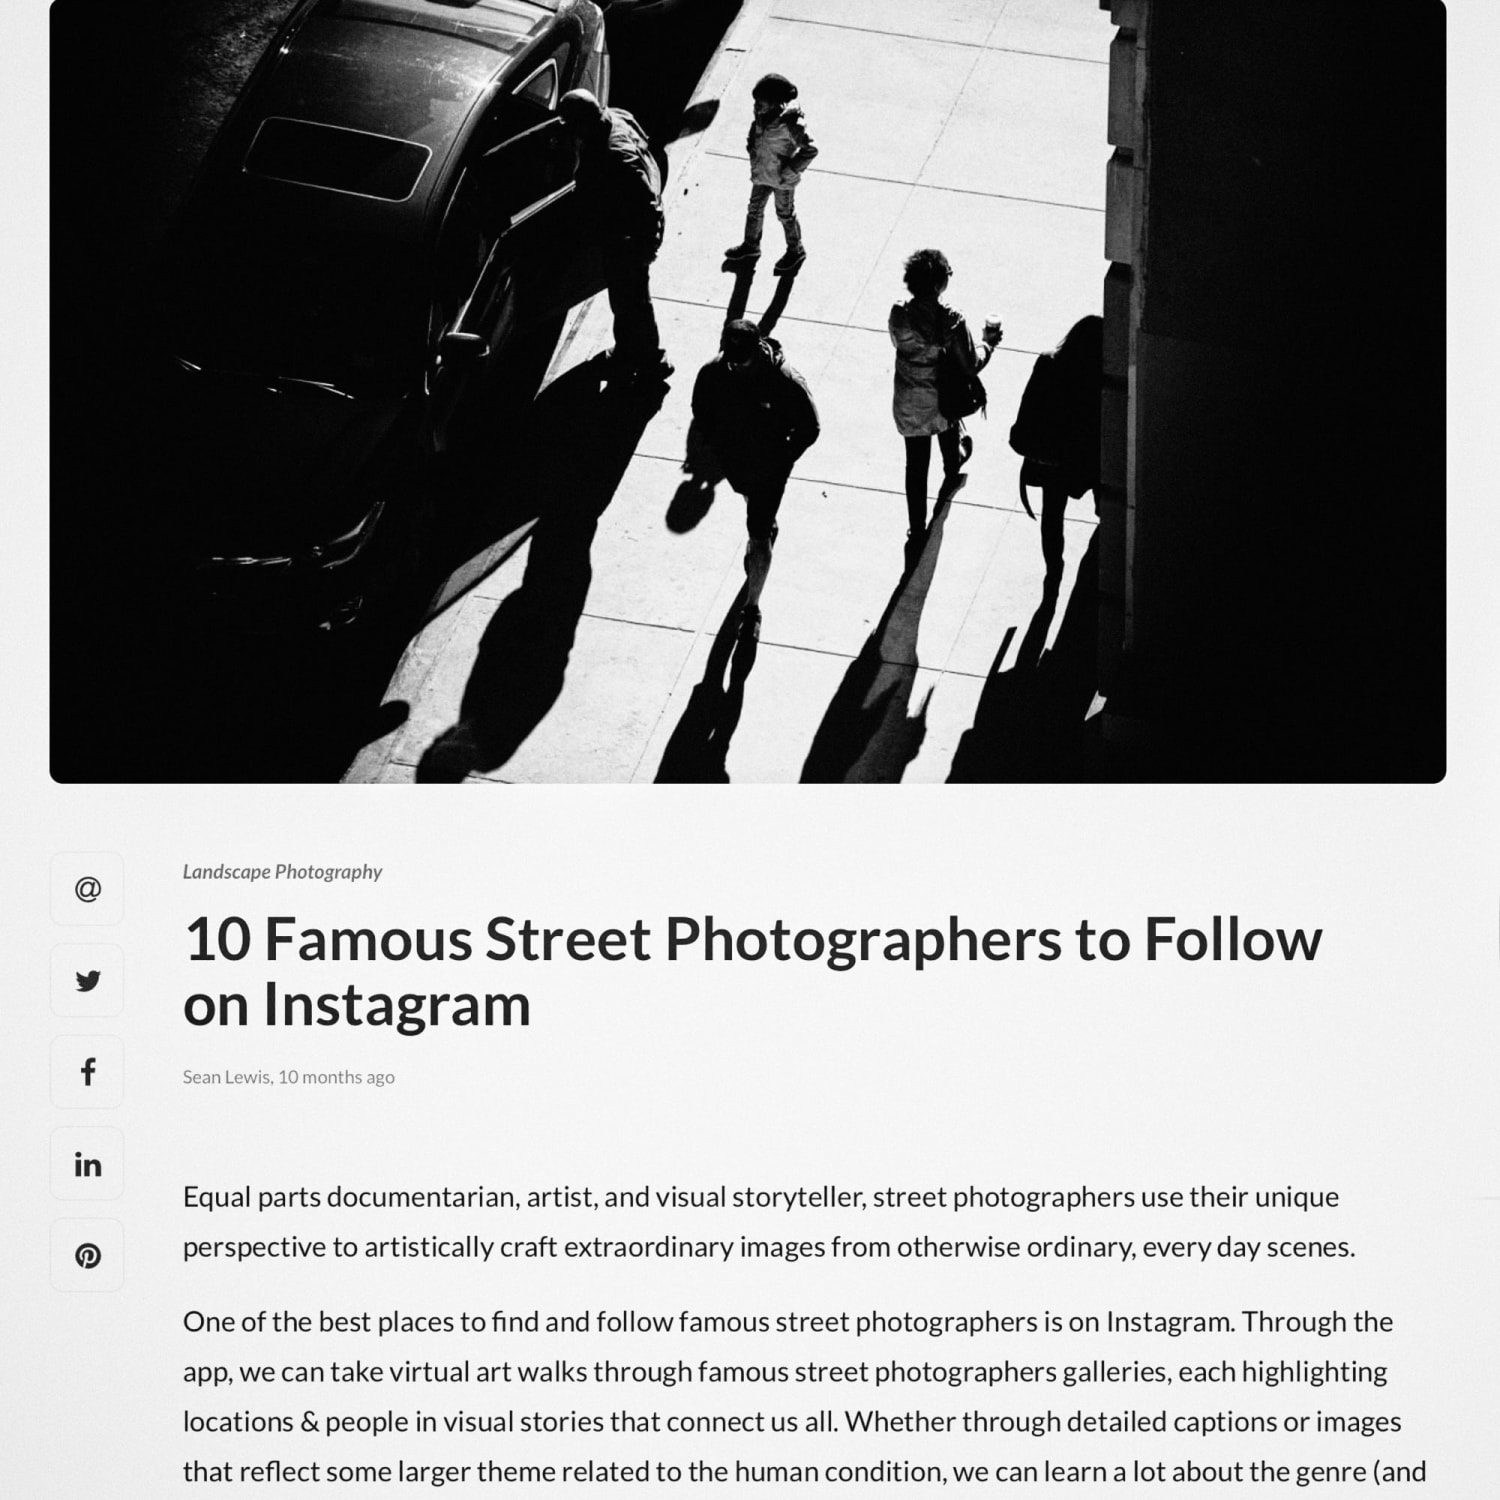 10 Famous Street Photographers on Instagram